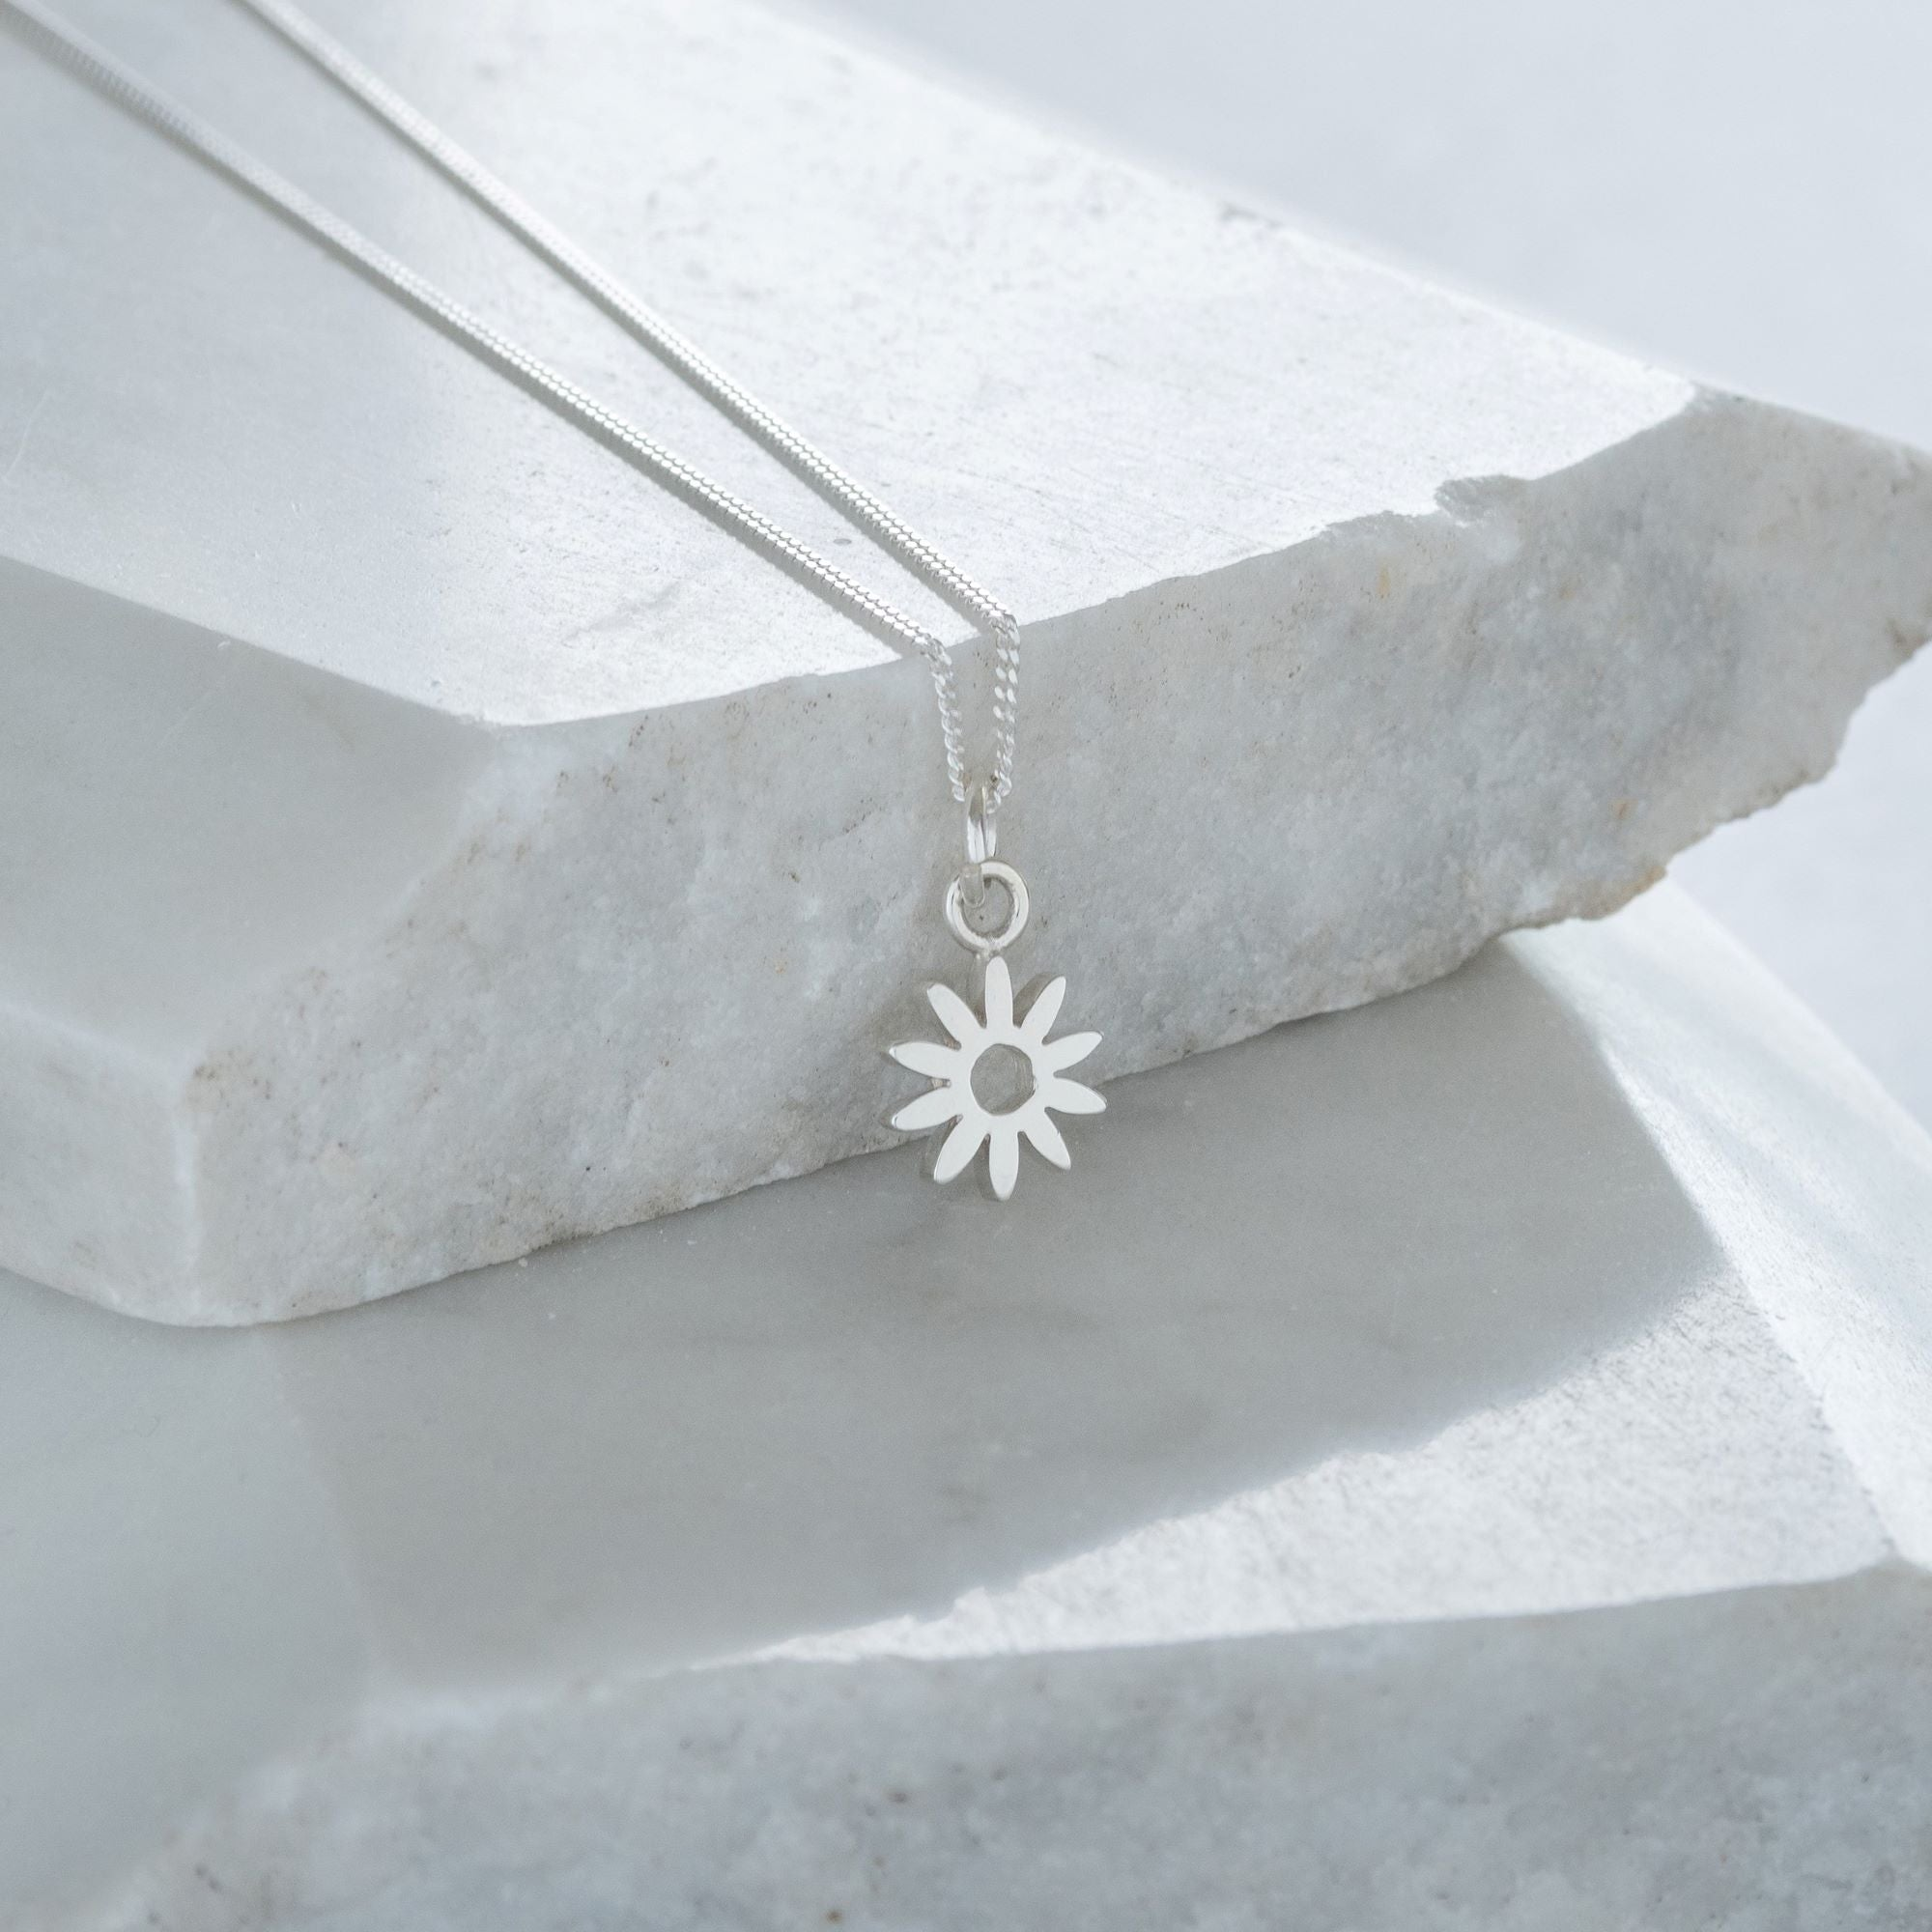 Tiny Flower Charm Necklace Sterling Silver